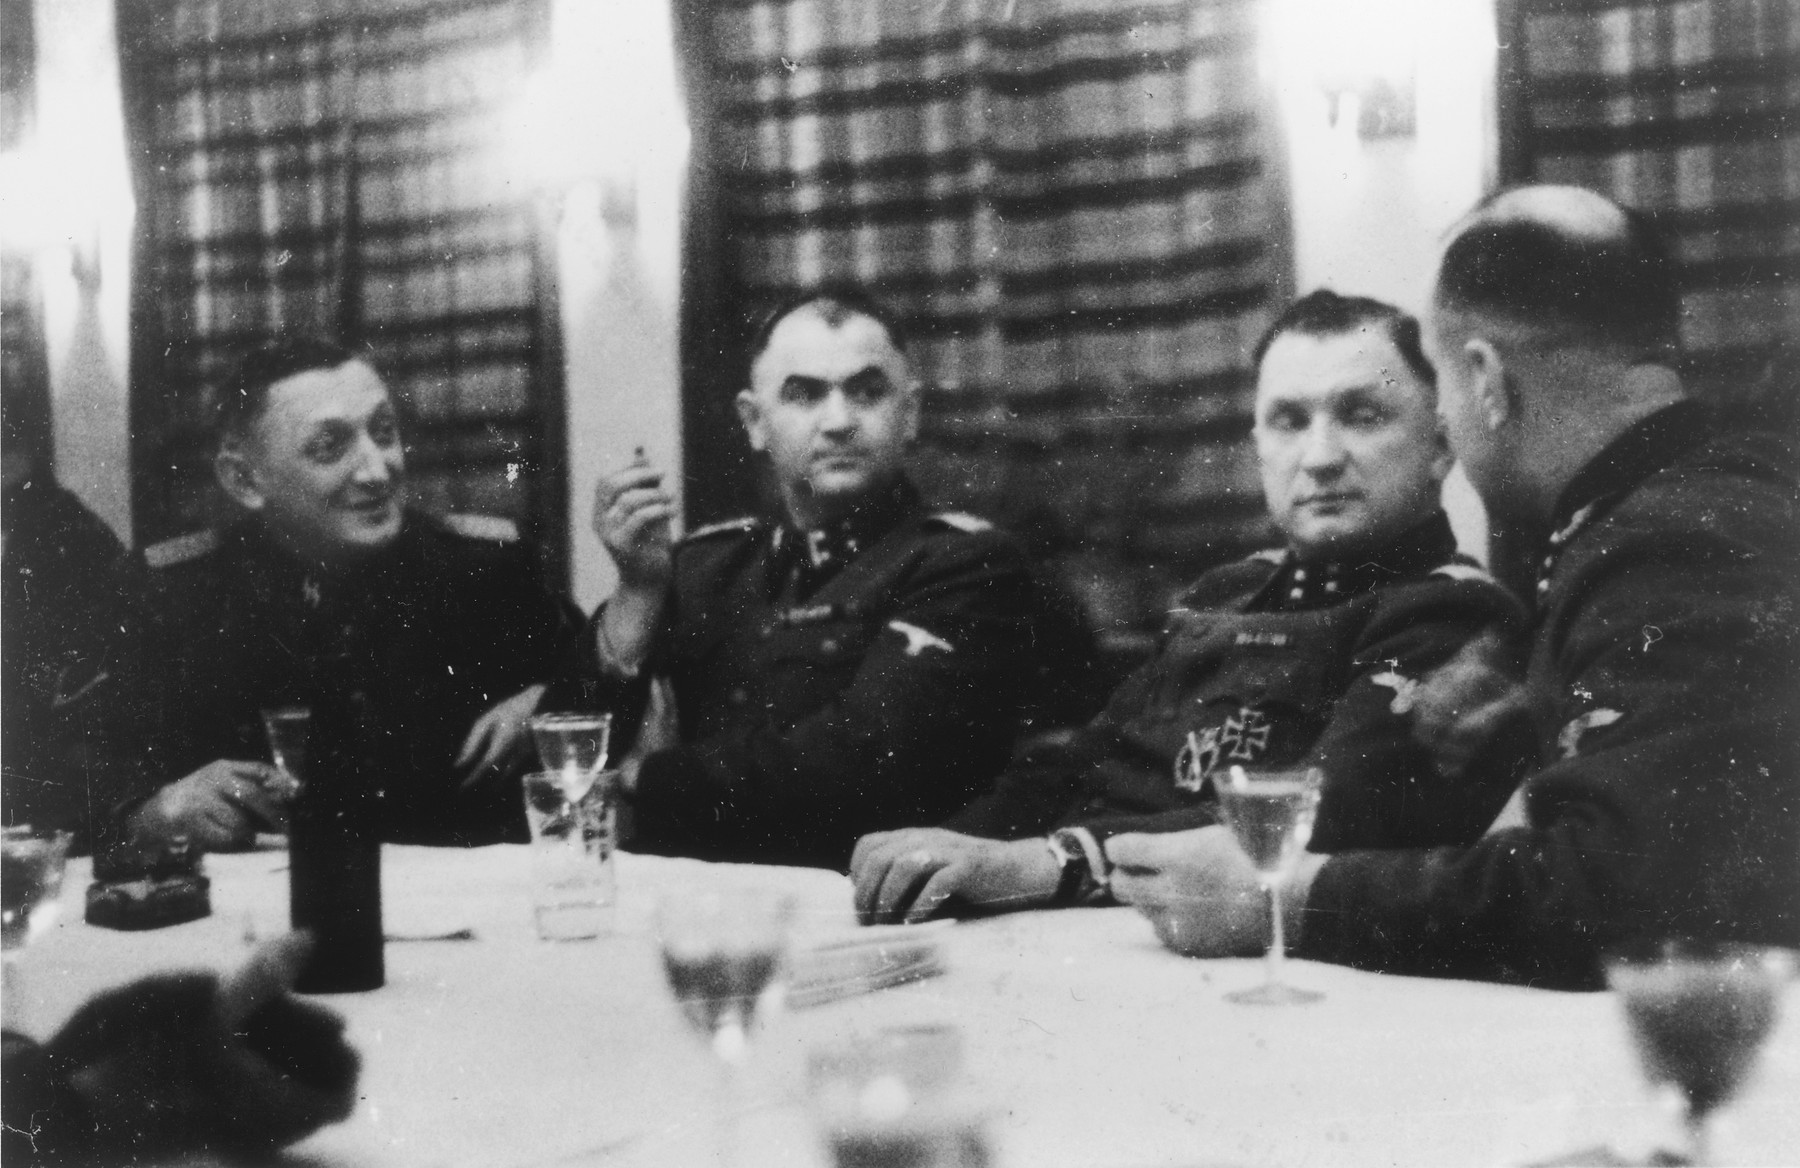 Four SS officers gather for drinks in a hunting lodge.  From left to right are Franz Xaver Kraus, Karl Moeckel and Richard Baer. Franz Xaver Kraus was brought to Auschwitz in December 1944 to facilitate the evacuation of the camp.